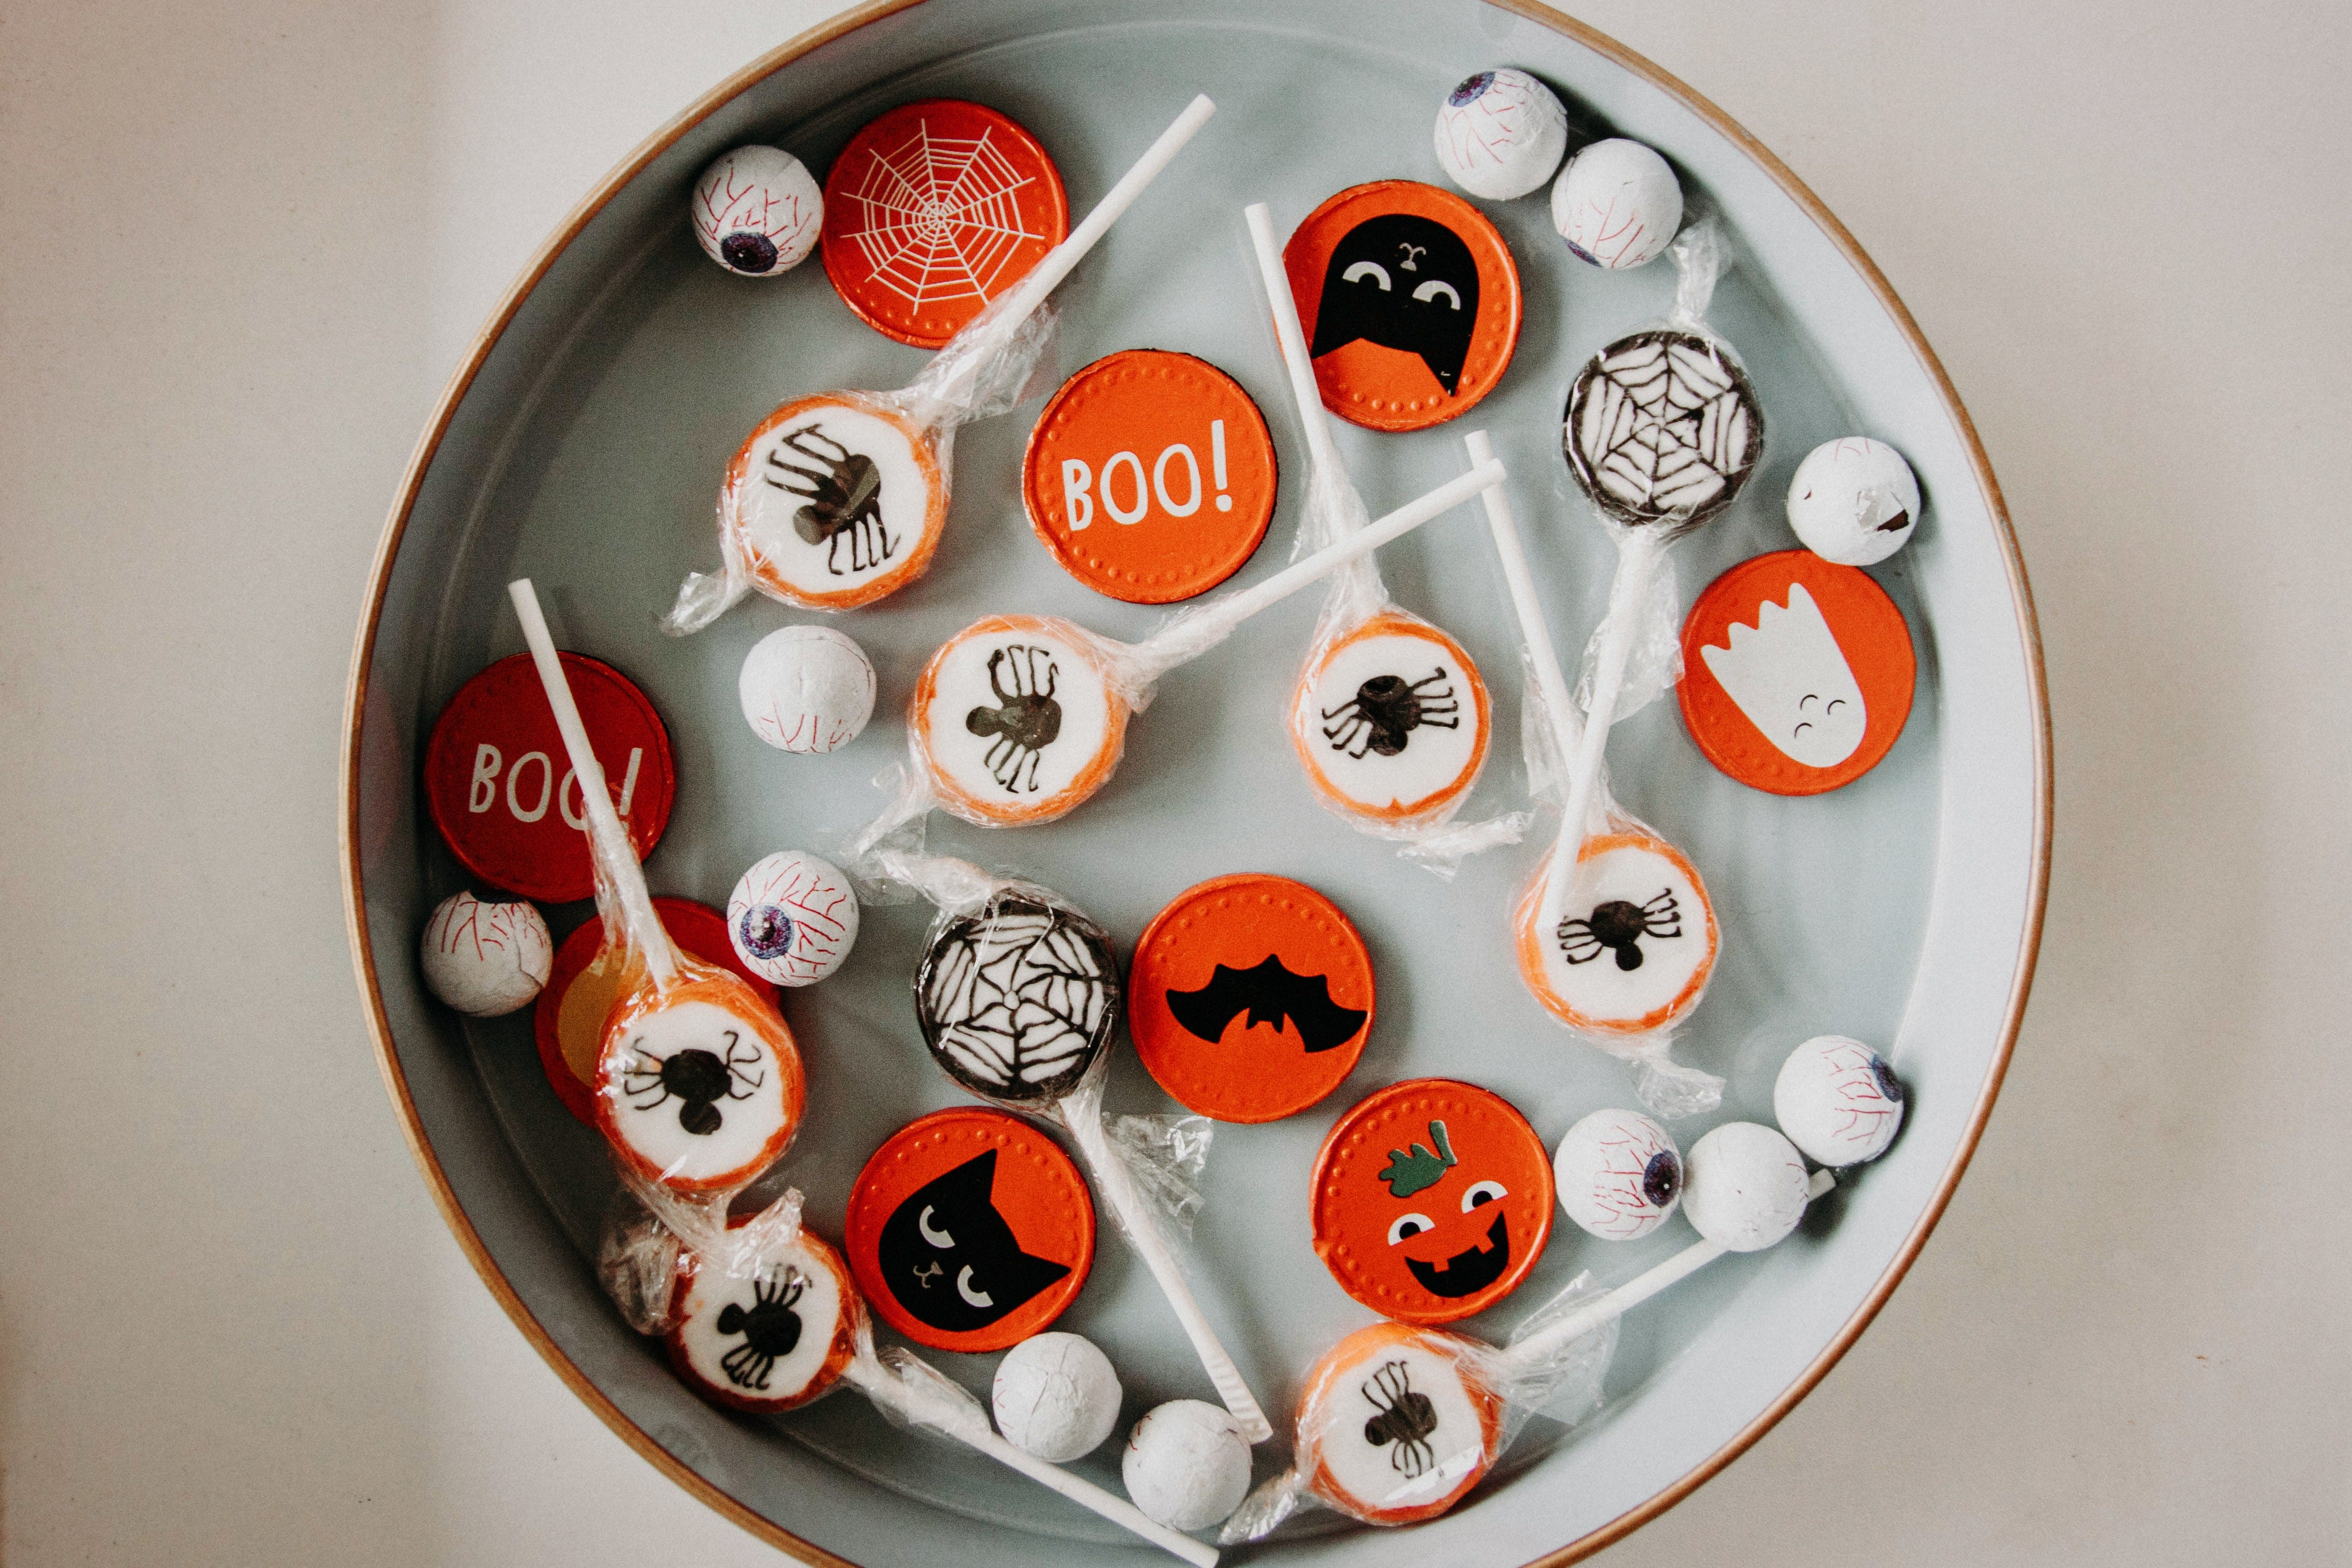 An assortment of Halloween sweets in a bowl